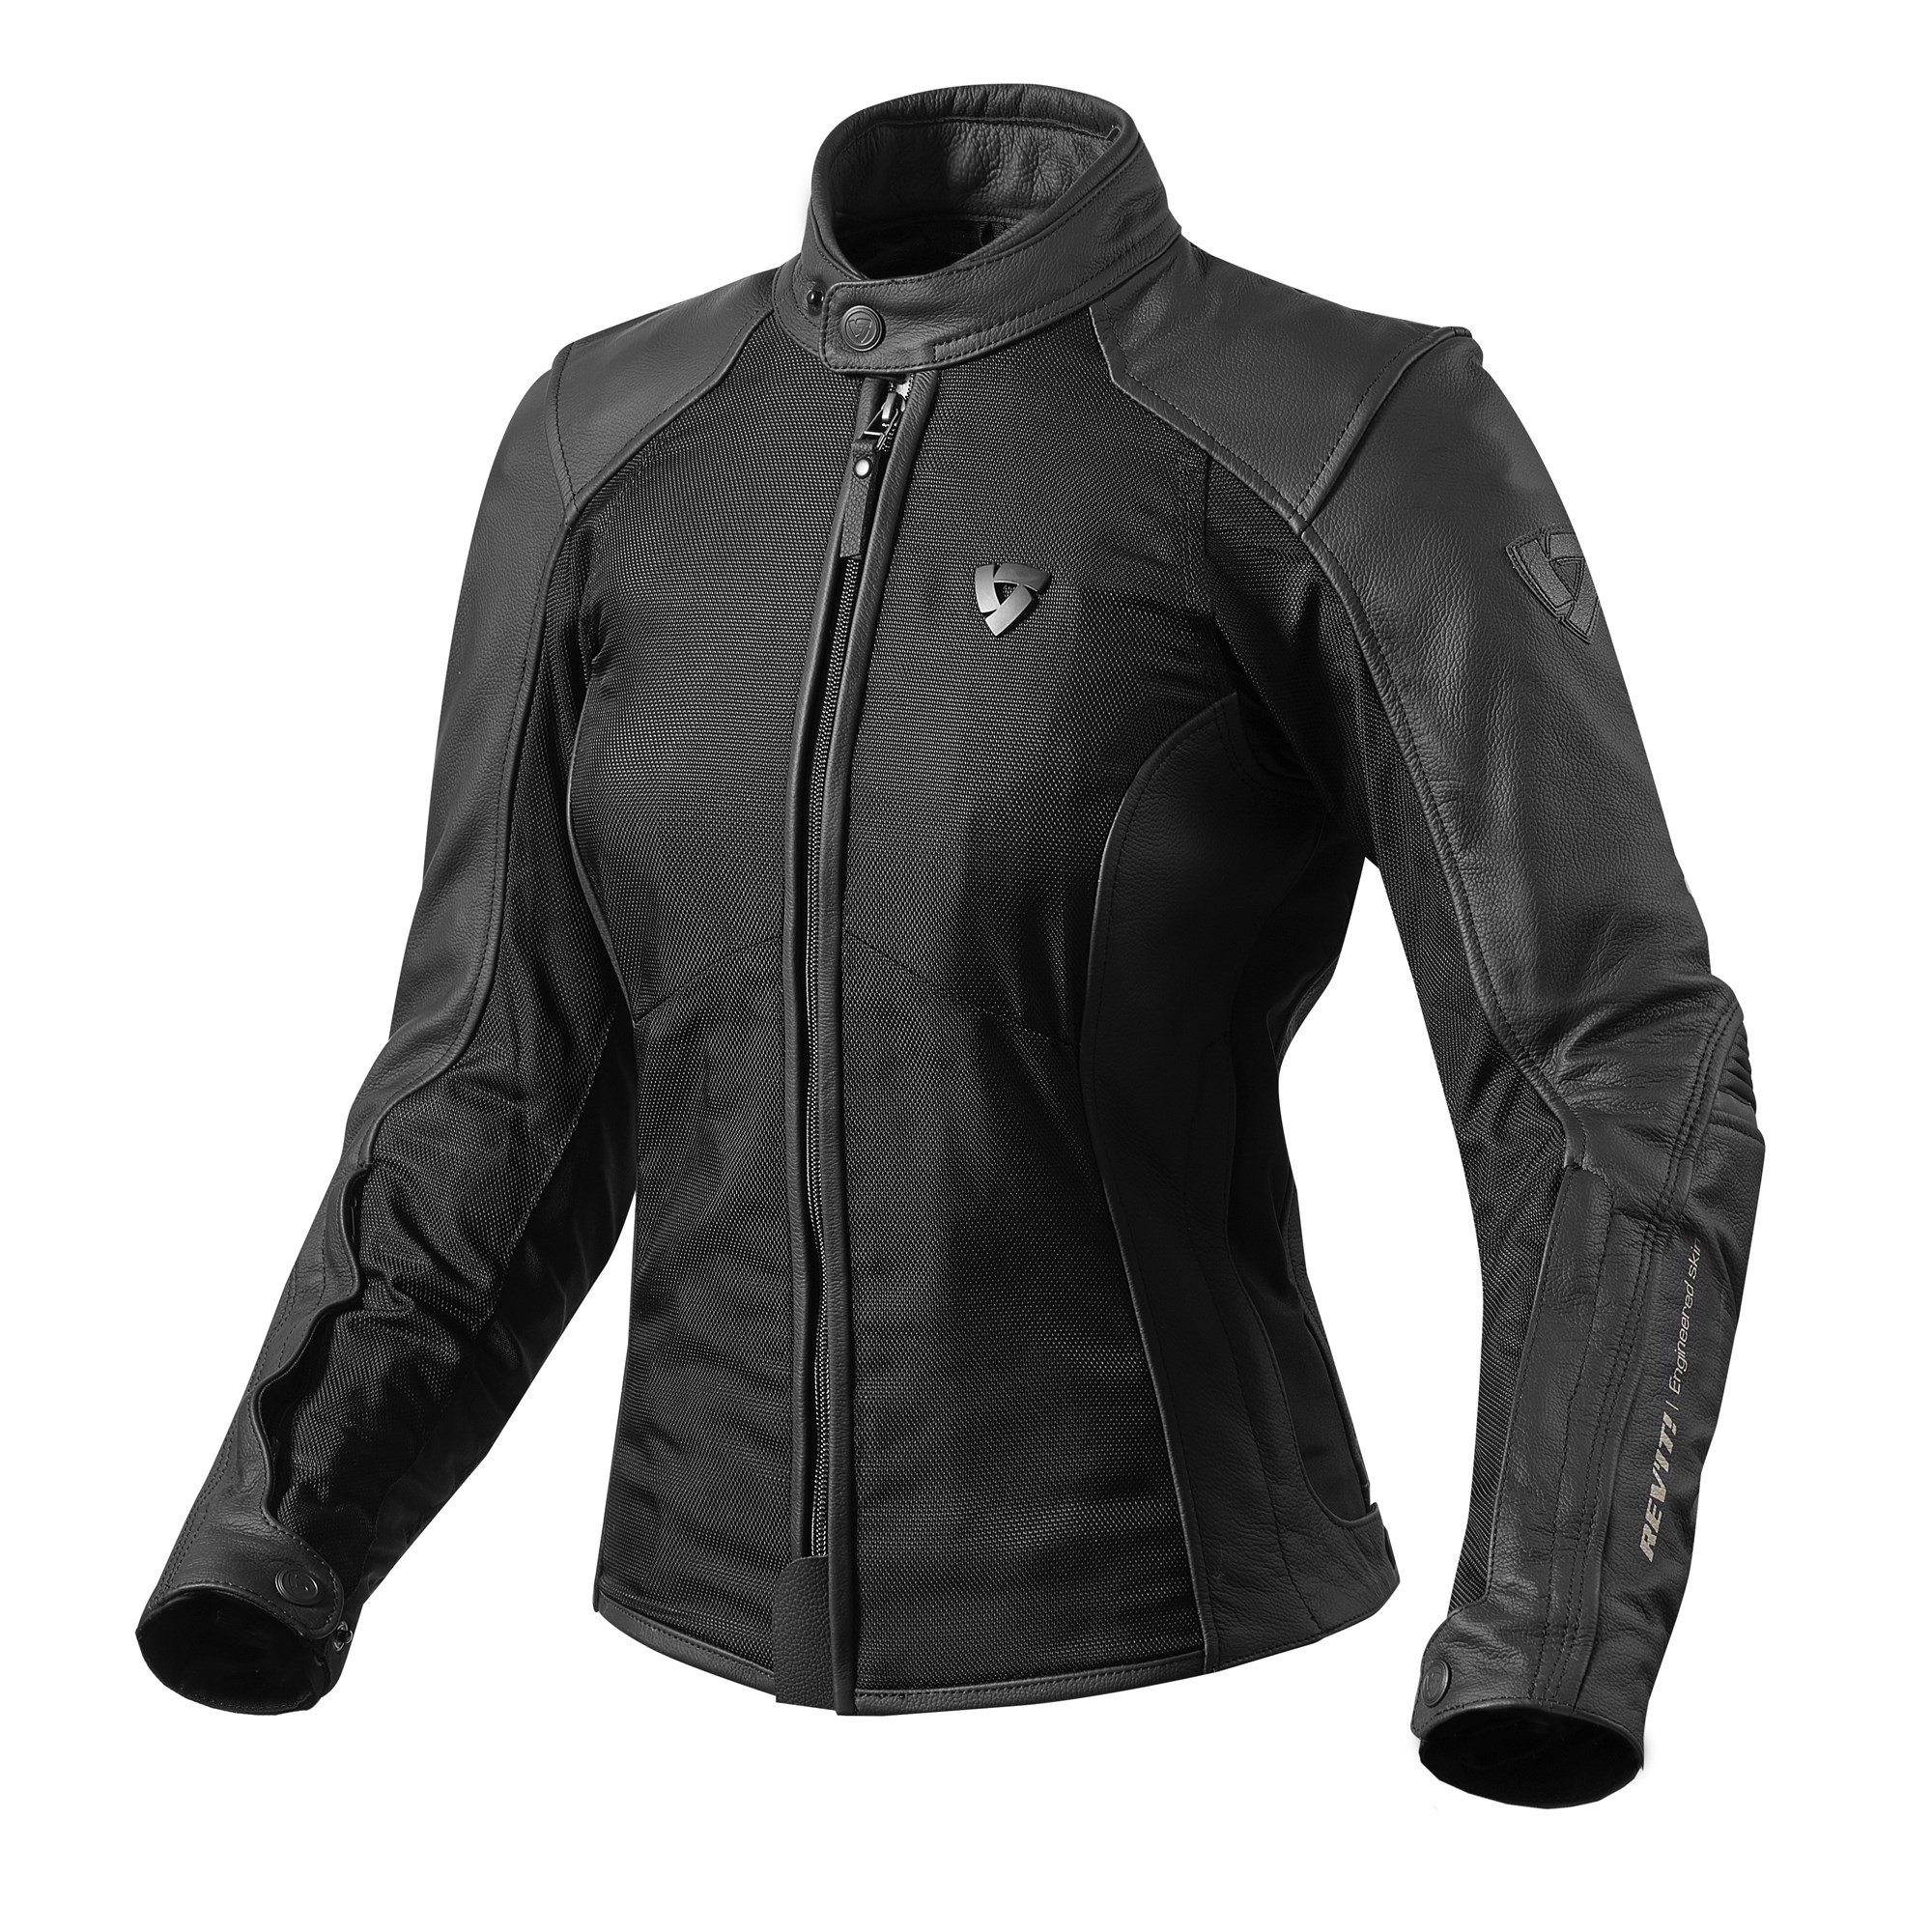 rev it ignition 2 ladies jacket lsh racing world. Black Bedroom Furniture Sets. Home Design Ideas